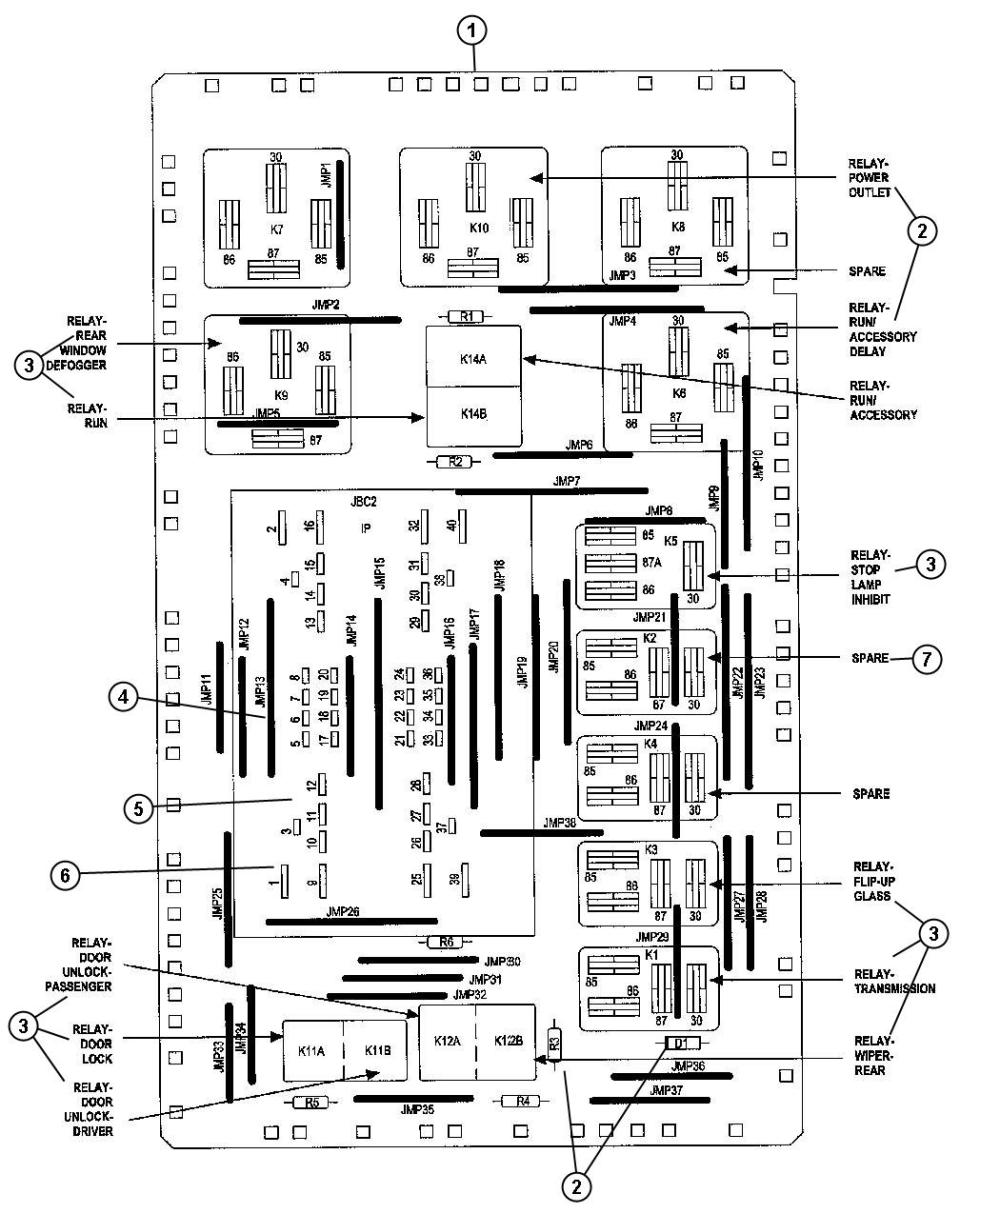 medium resolution of electrical wiring diagram 2006 jeep commander electrical 2006 jeep commander stereo wiring diagram 2006 jeep commander